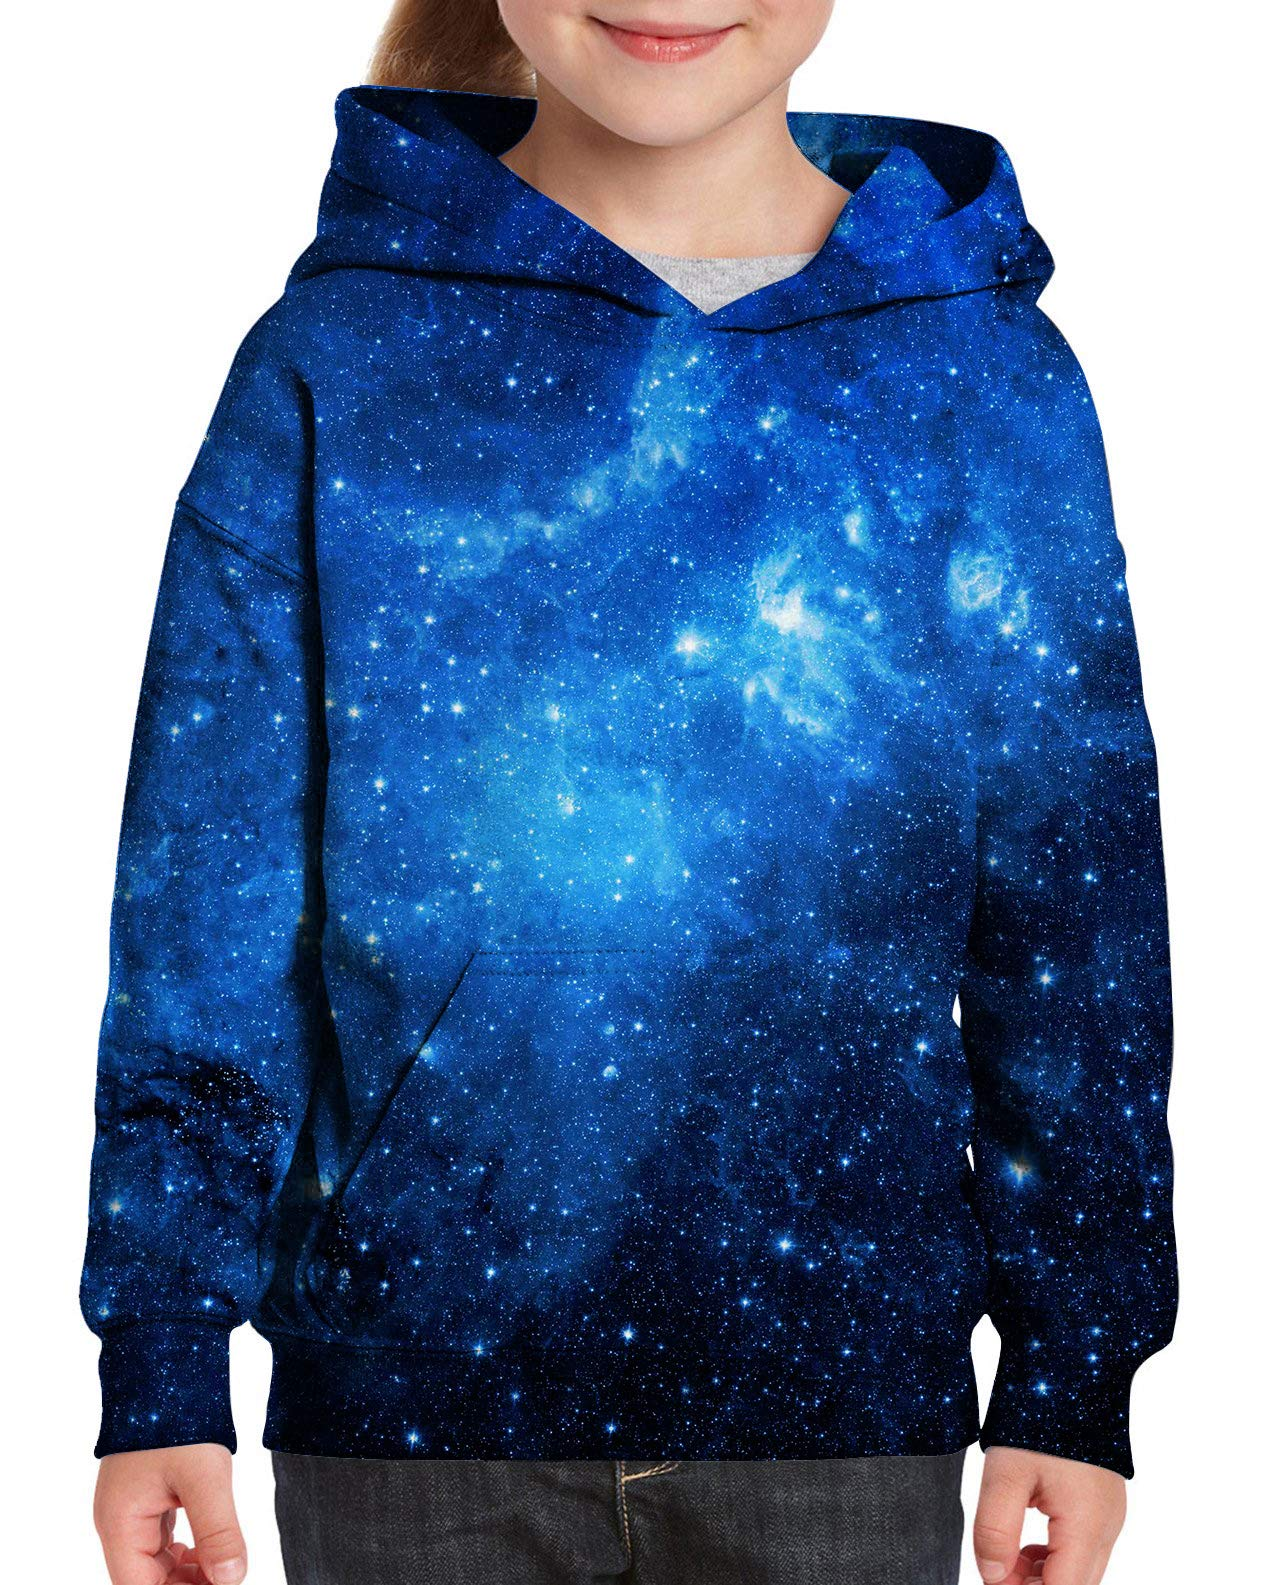 Another Fun 3D sweatshirt style pullover shirt